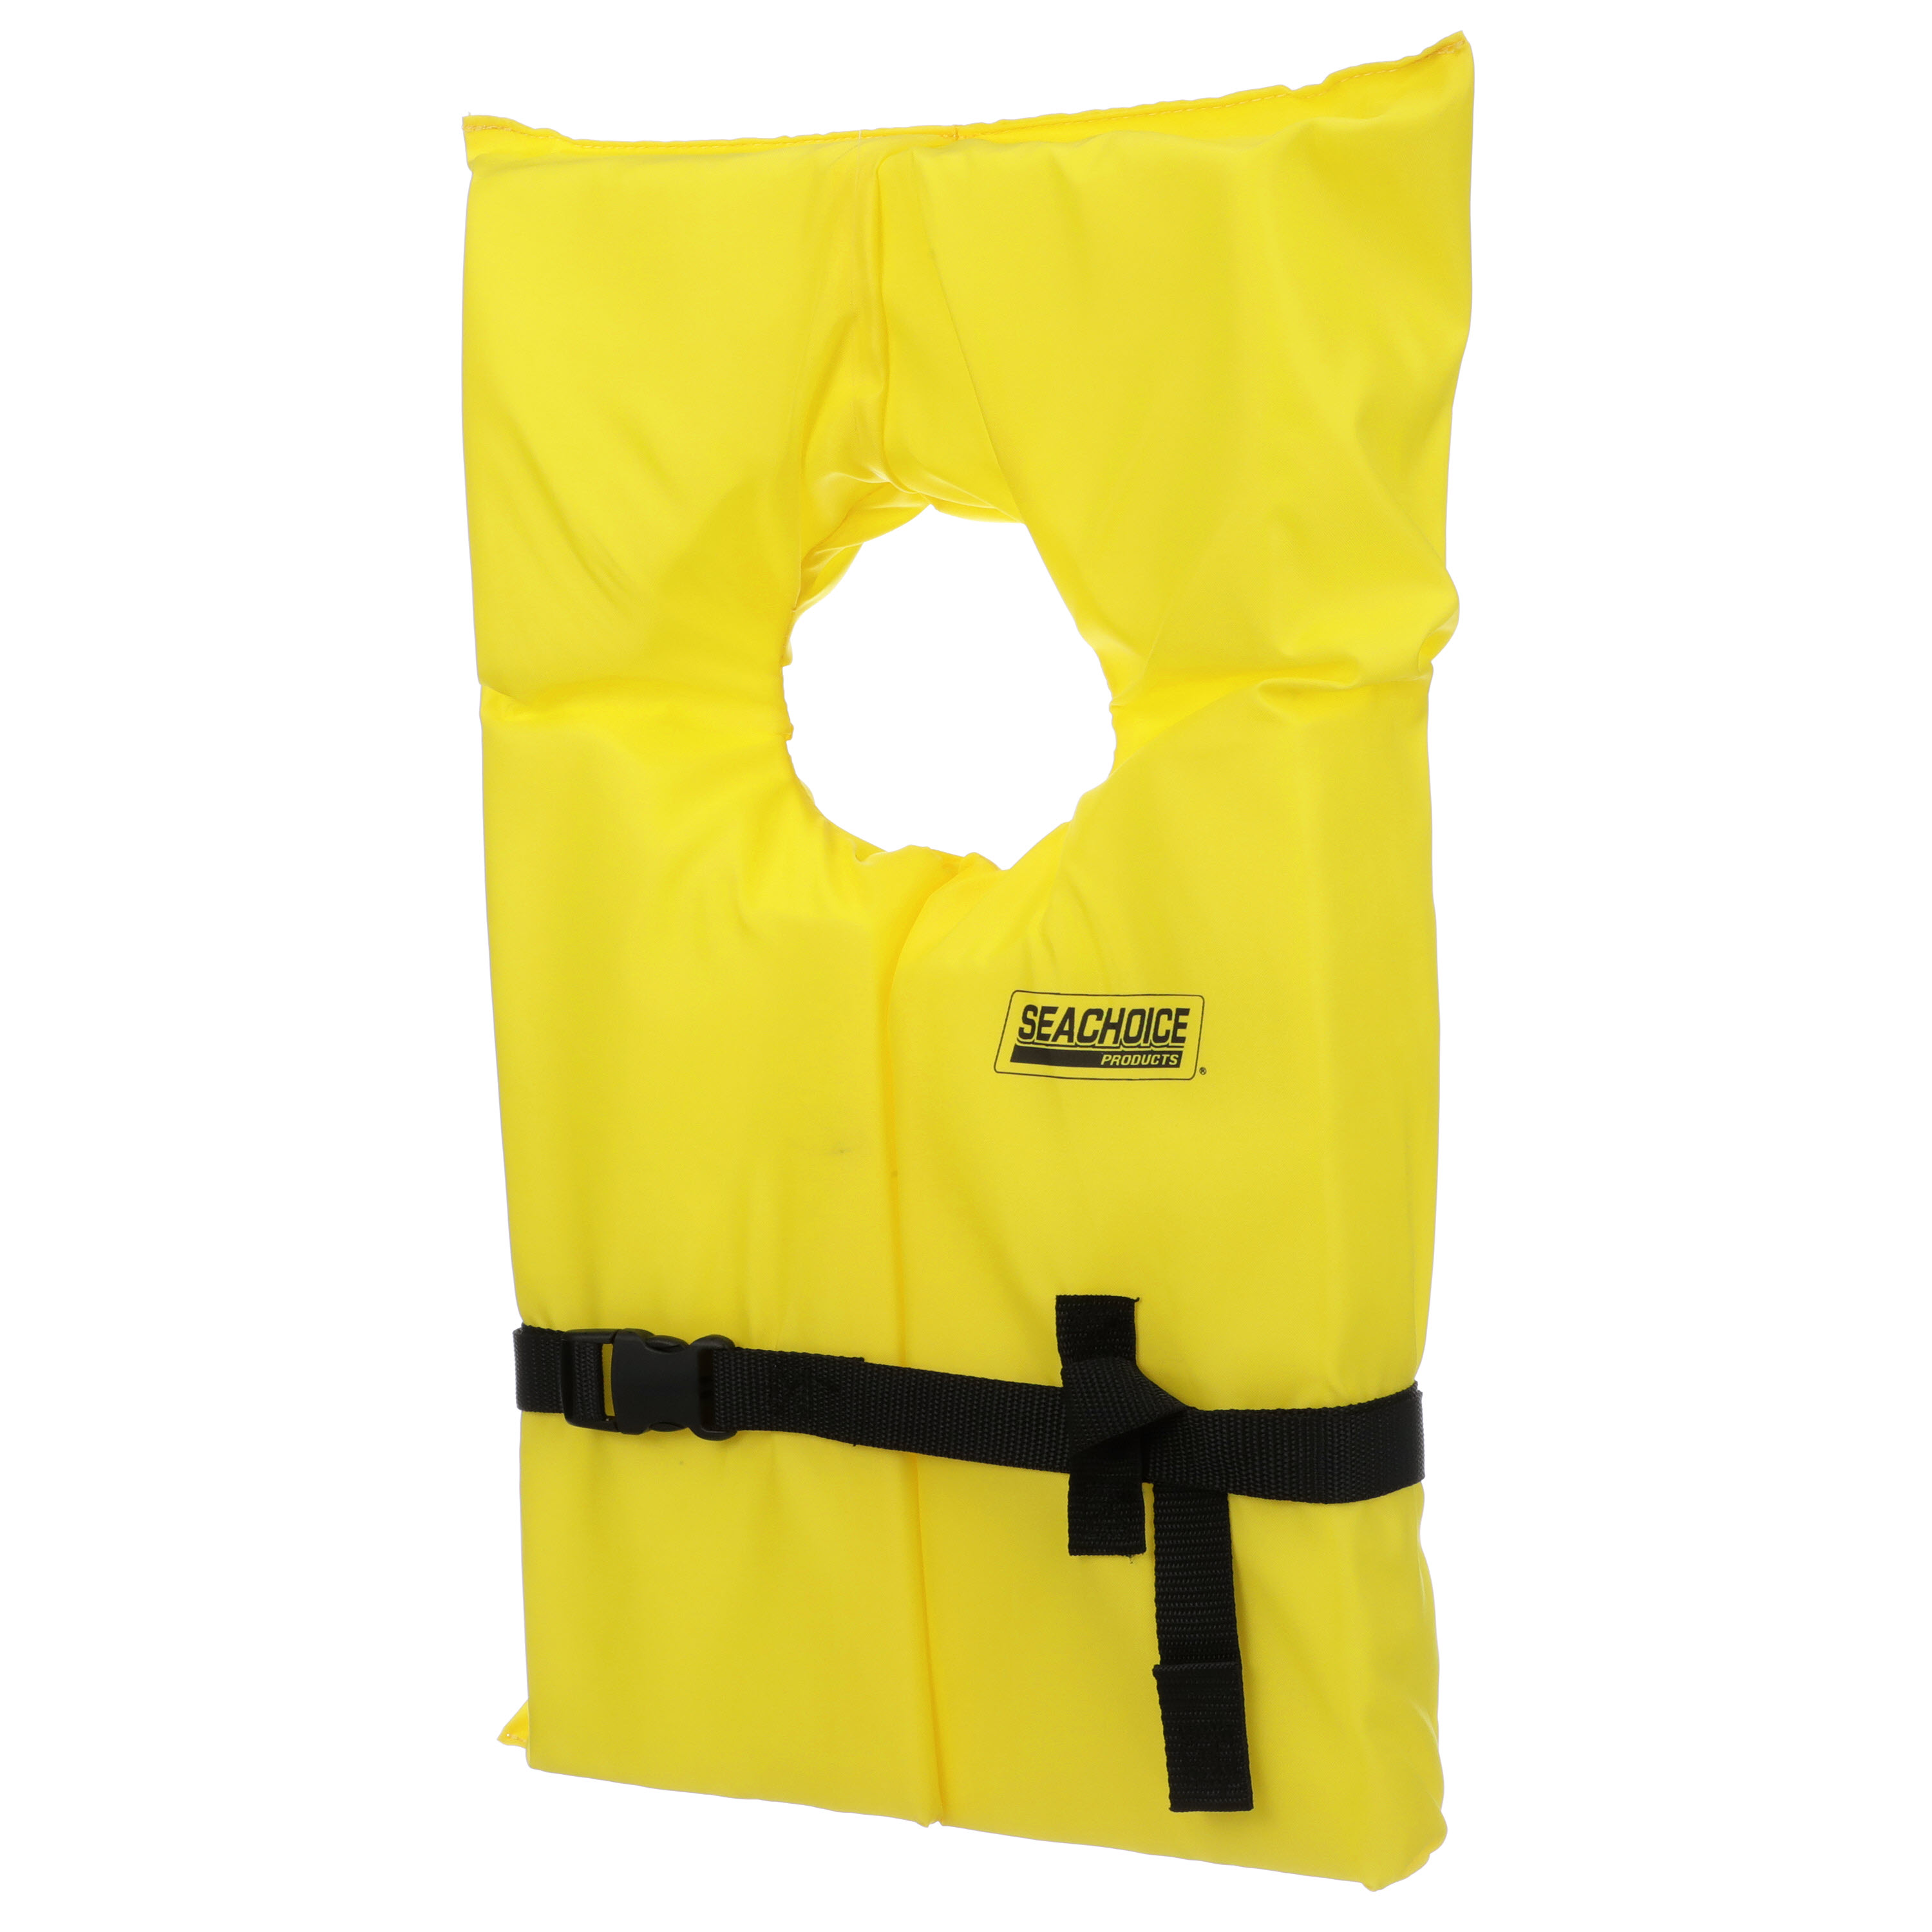 Life vest and flotation cushions fungible investment